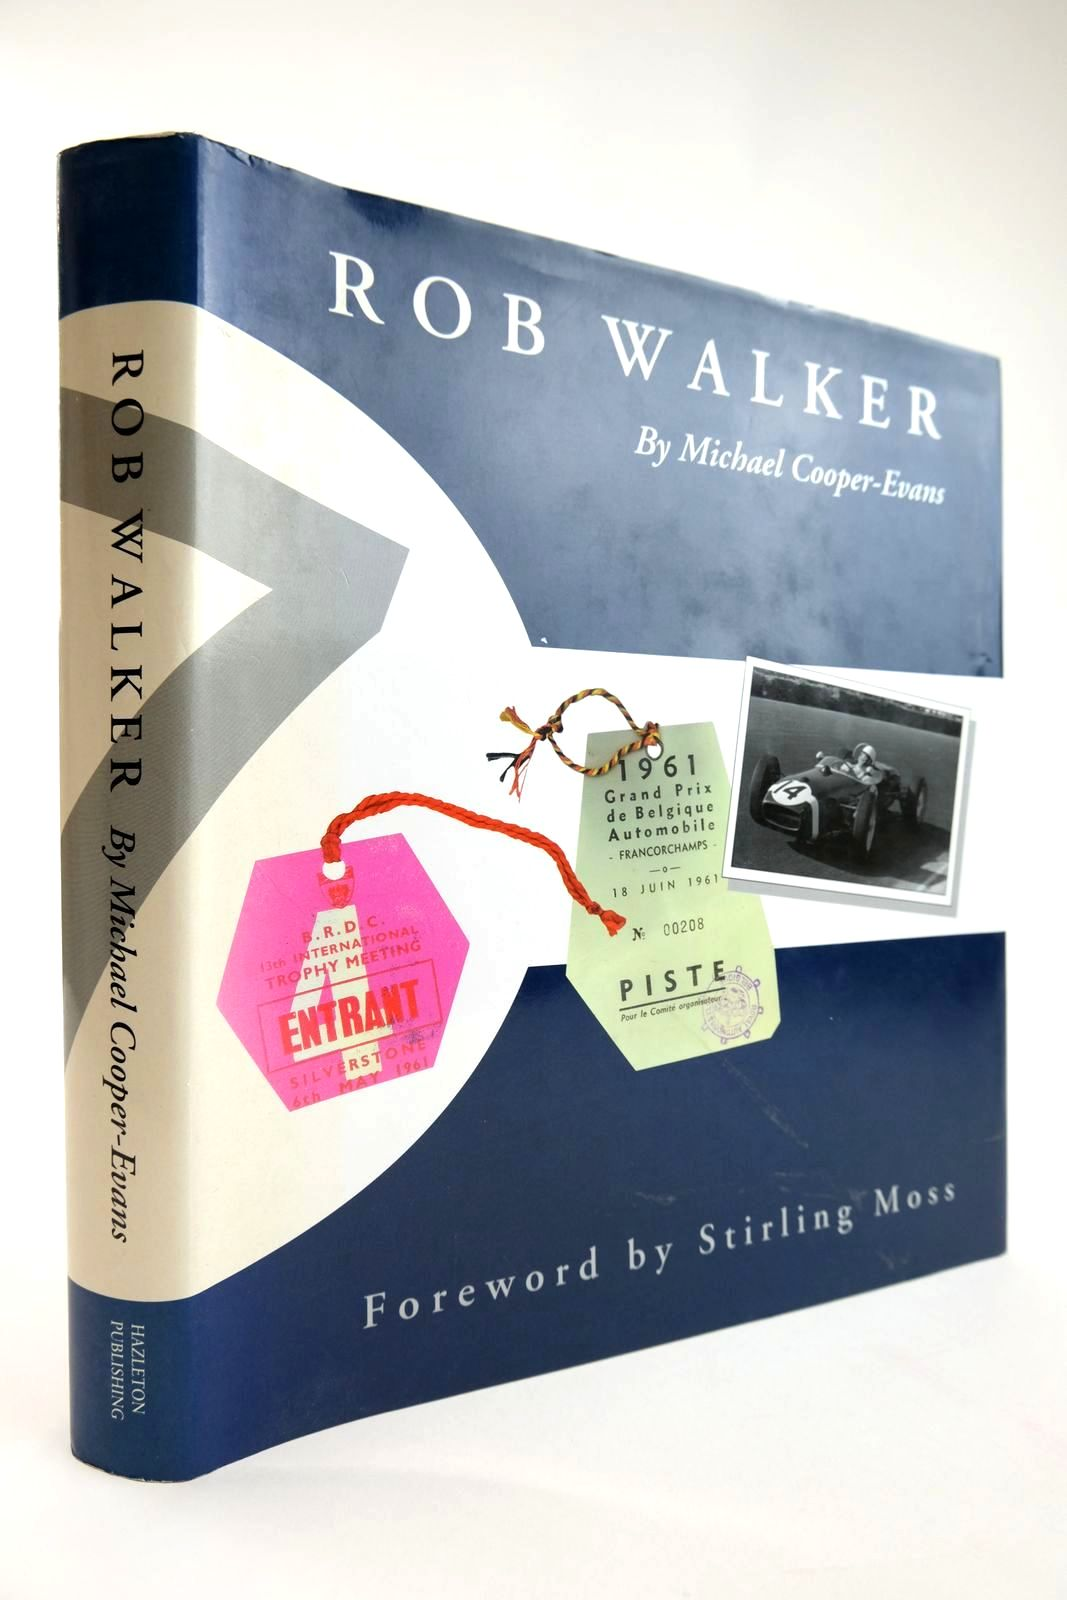 Photo of ROB WALKER written by Cooper-Evans, Michael Moss, Stirling published by Hazleton Publishing (STOCK CODE: 2133522)  for sale by Stella & Rose's Books